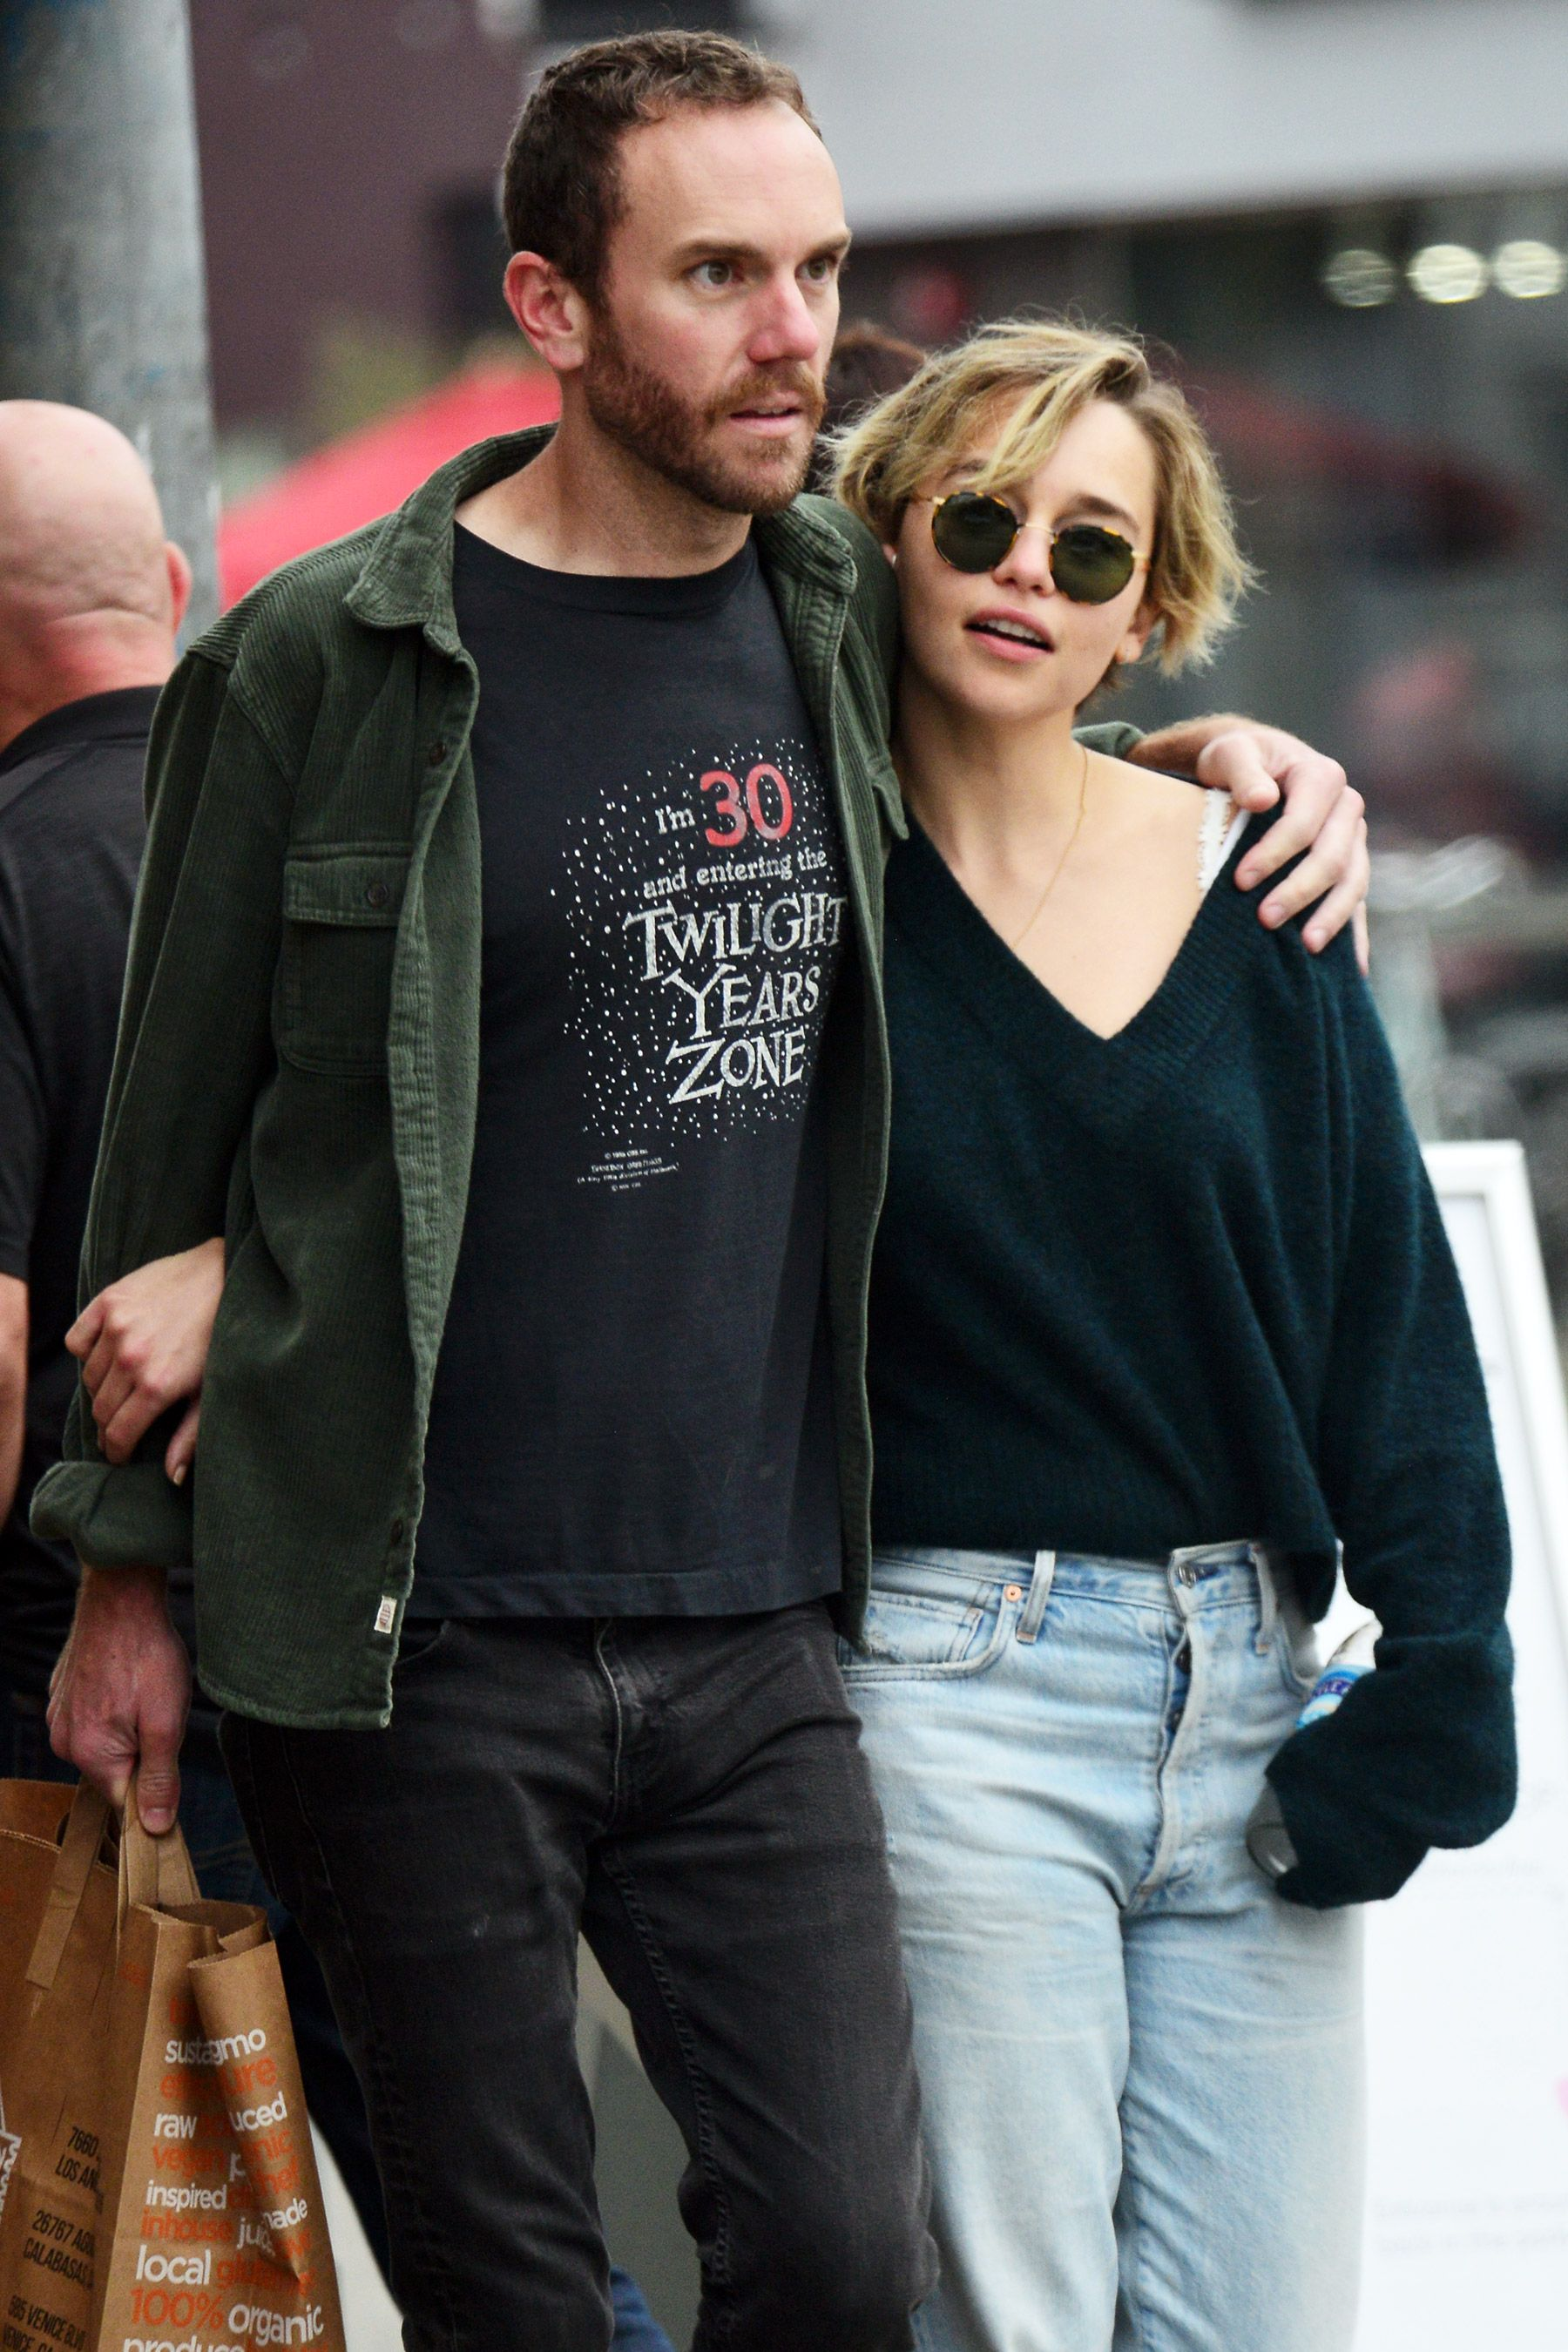 Emilia Clarke (Daenarys Targaryen) and Charlie McDowell The mother of dragons and her beau were first spotted together back in 2018.